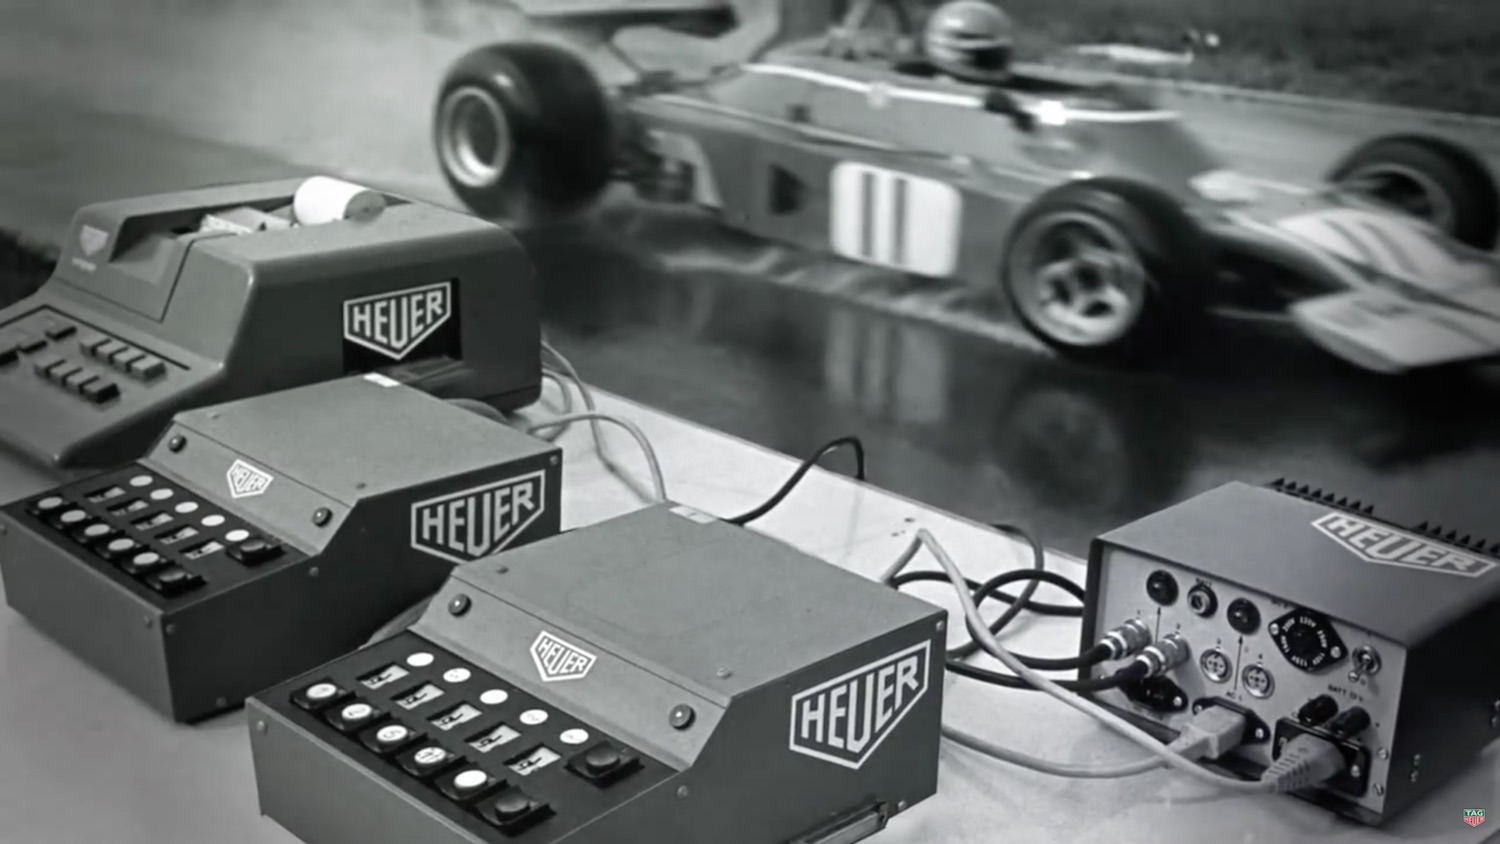 Heuer Formula 1 electronic timing